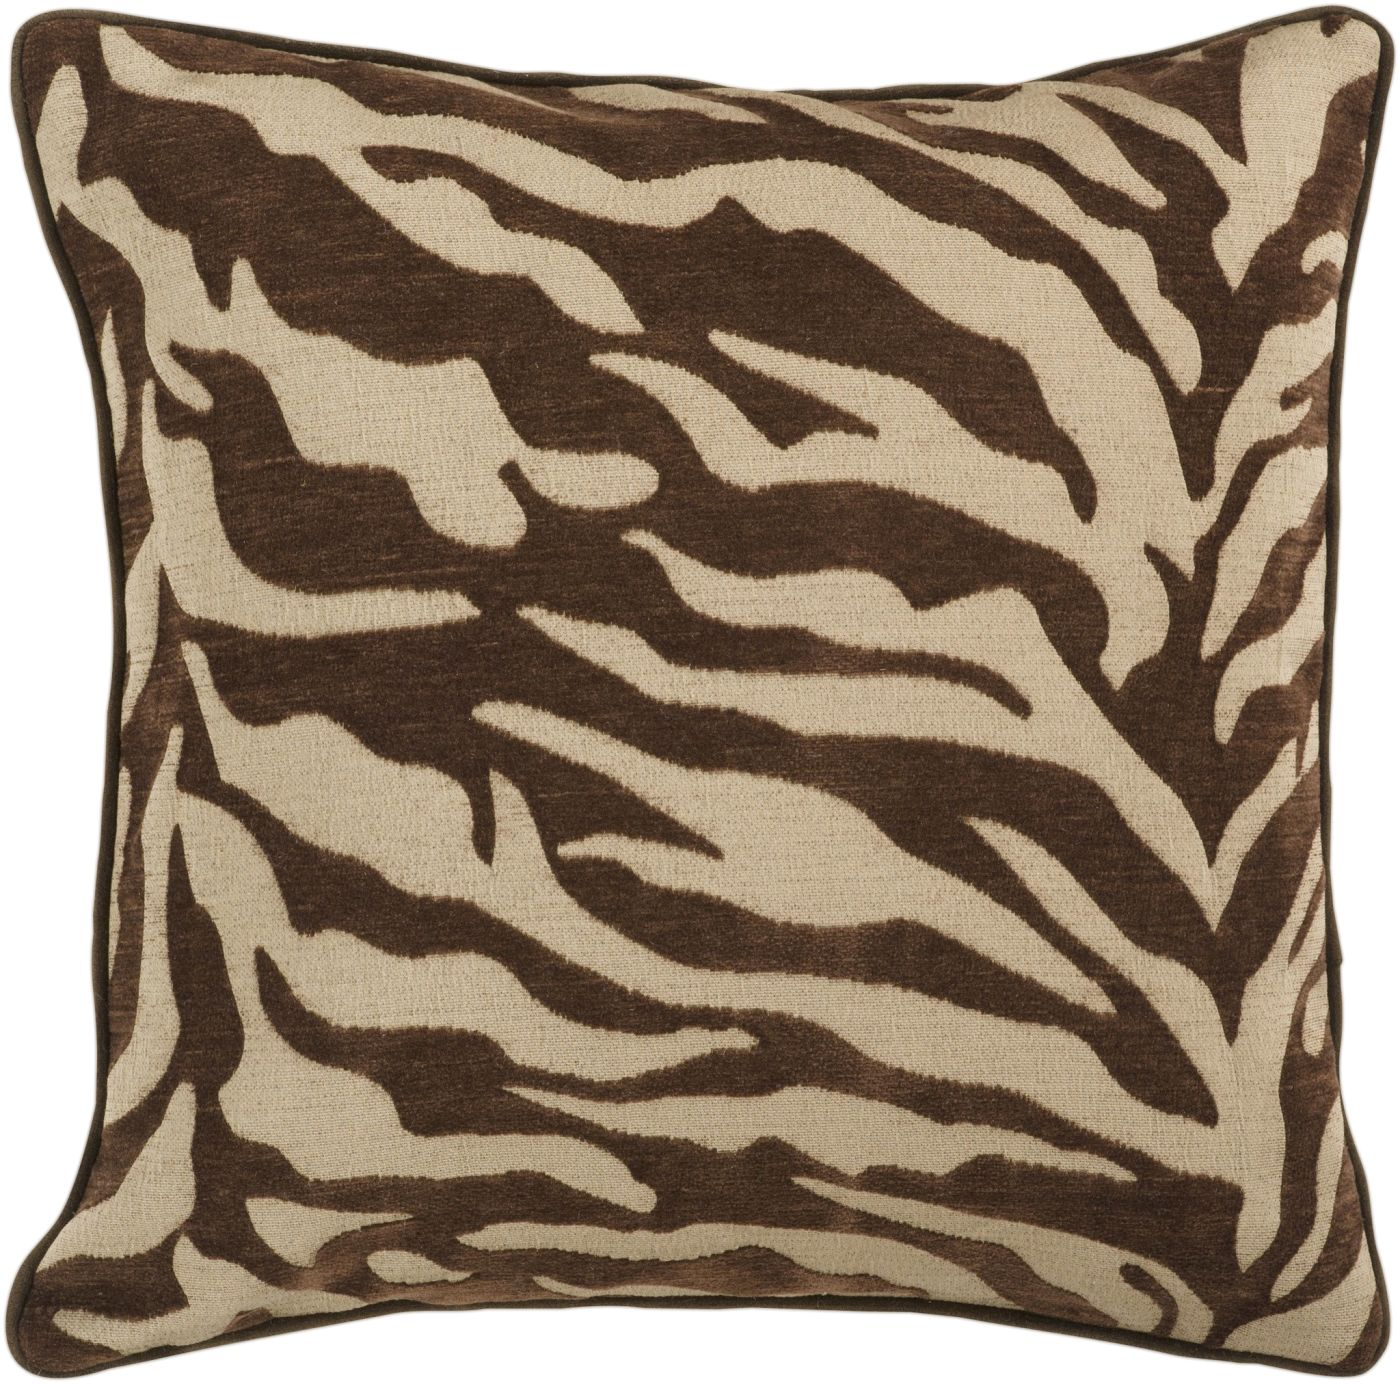 Awe Inspiring Surya Blowout Sale Up To 70 Off Js033 1818D Velvet Zebra Throw Pillow Brown Brown Only Only 39 60 At Contemporary Furniture Warehouse Uwap Interior Chair Design Uwaporg